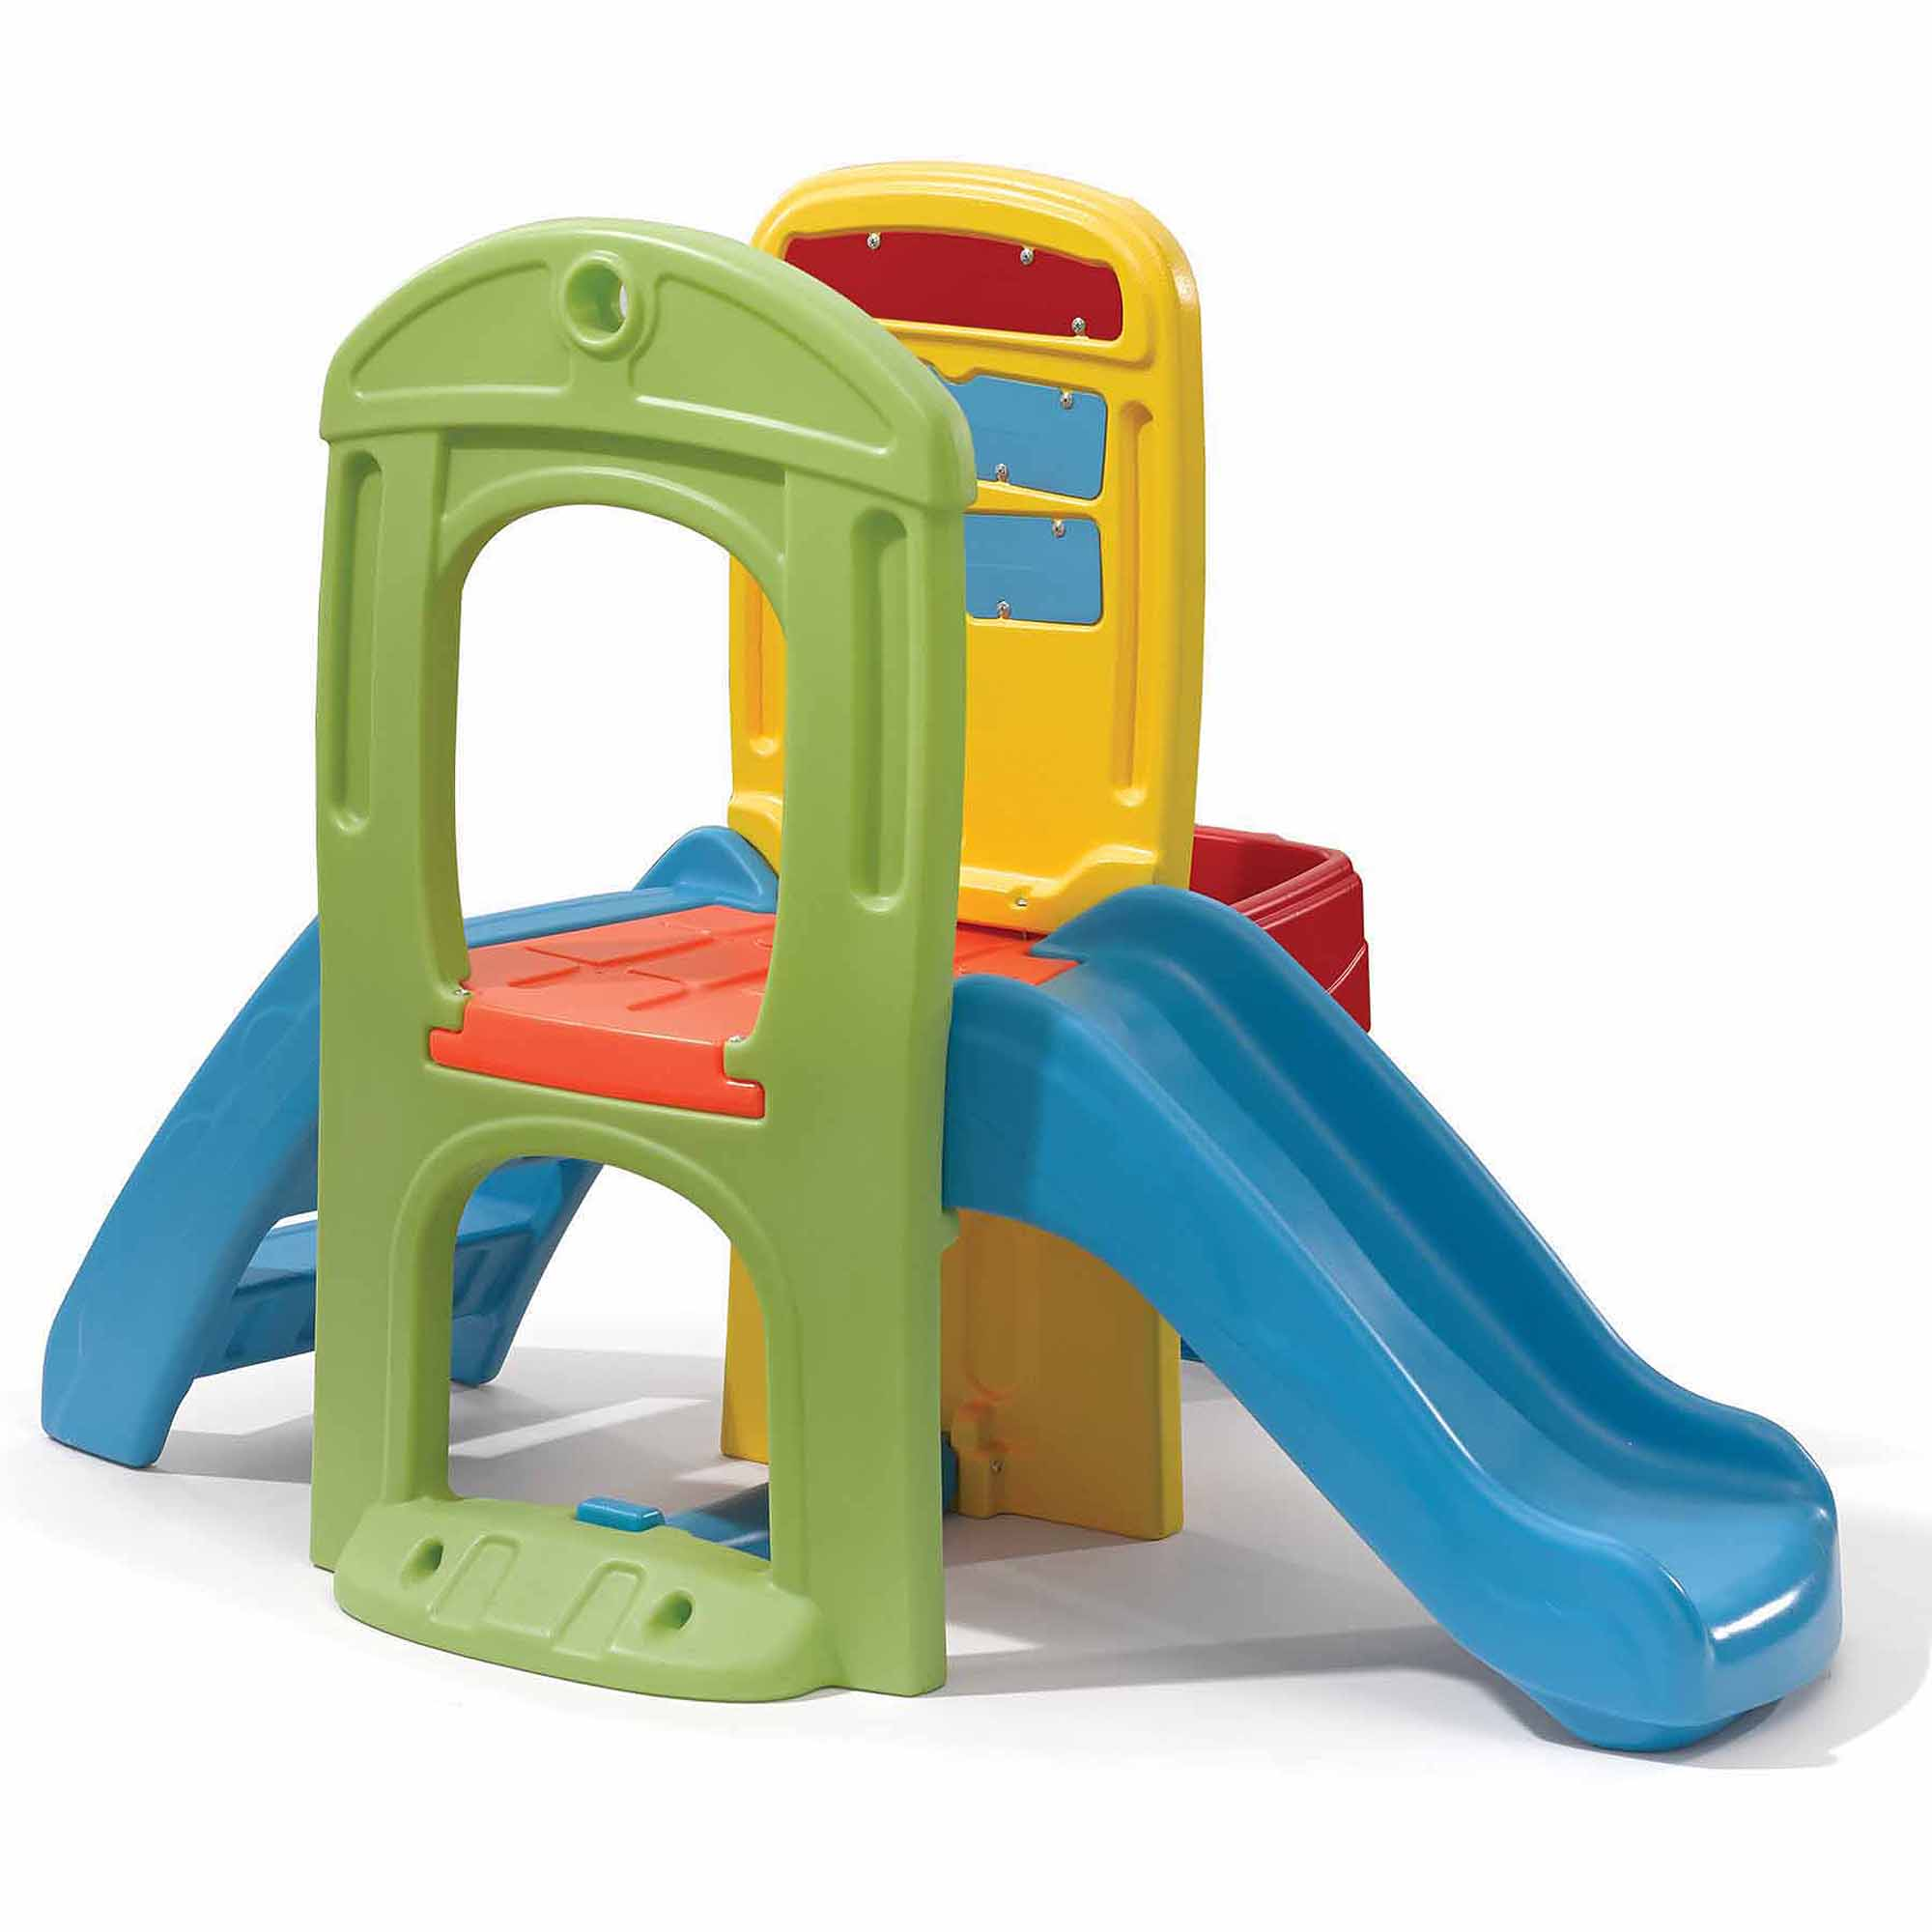 ENJOYABLE Step2 Play Ball Fun Climber FOR KIDS OUTDOOR INDOOR